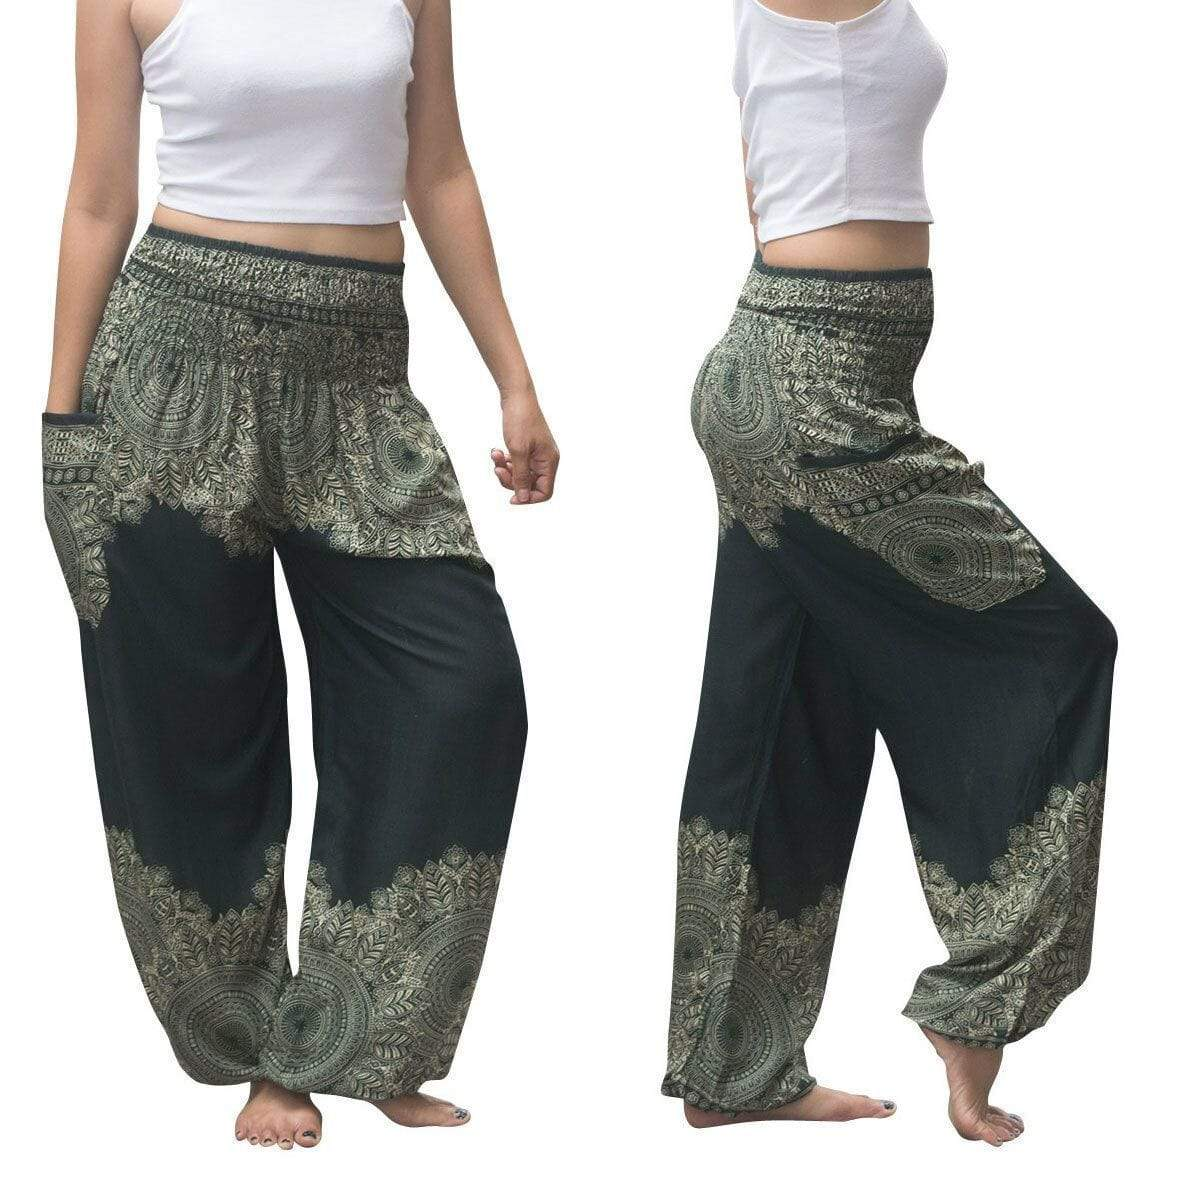 yoyoyoyoga.com Harem Pants Dark Green / One Size Boho Thai Mandala Feathers Harem Yoga Pants